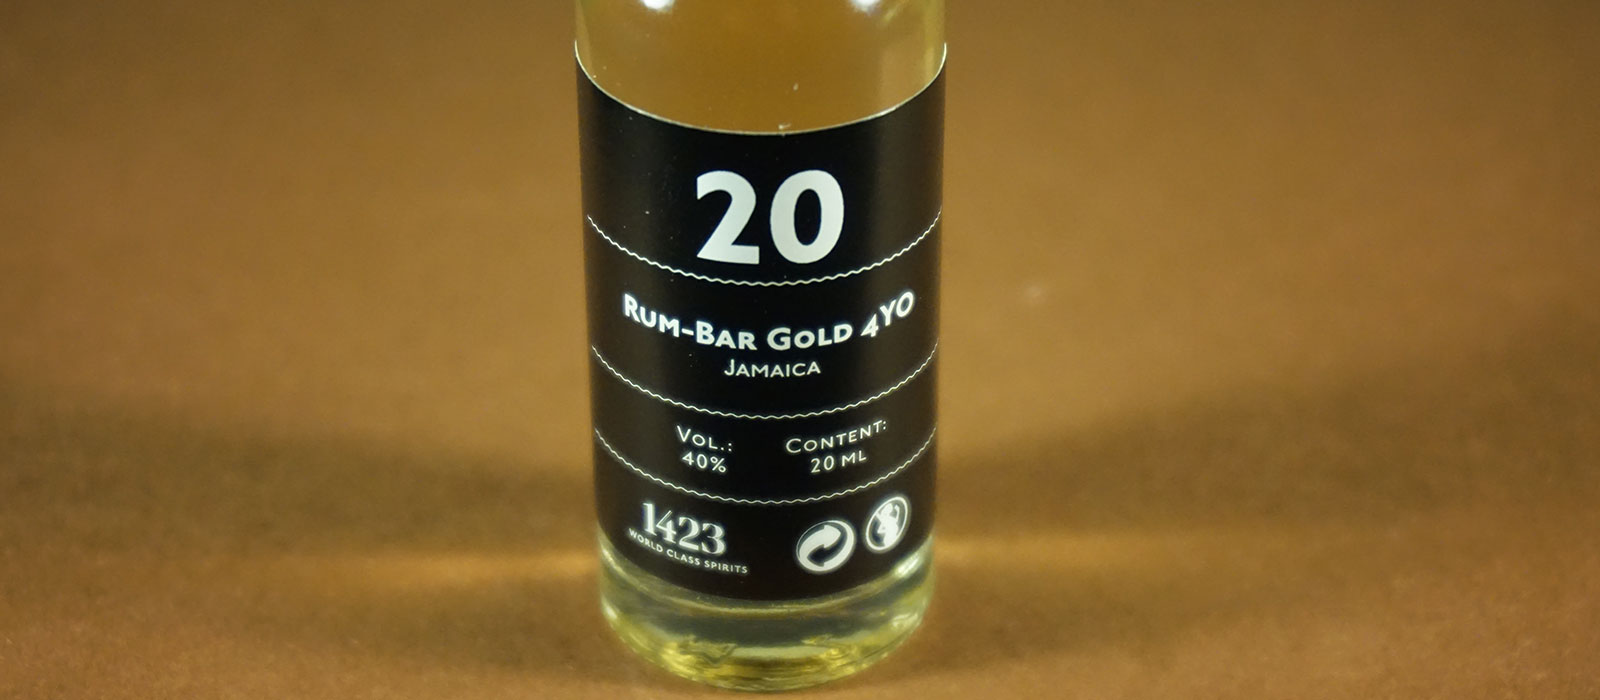 24 Days of Rum 2017: Dag 20 – Rum-Bar Gold 4 YO